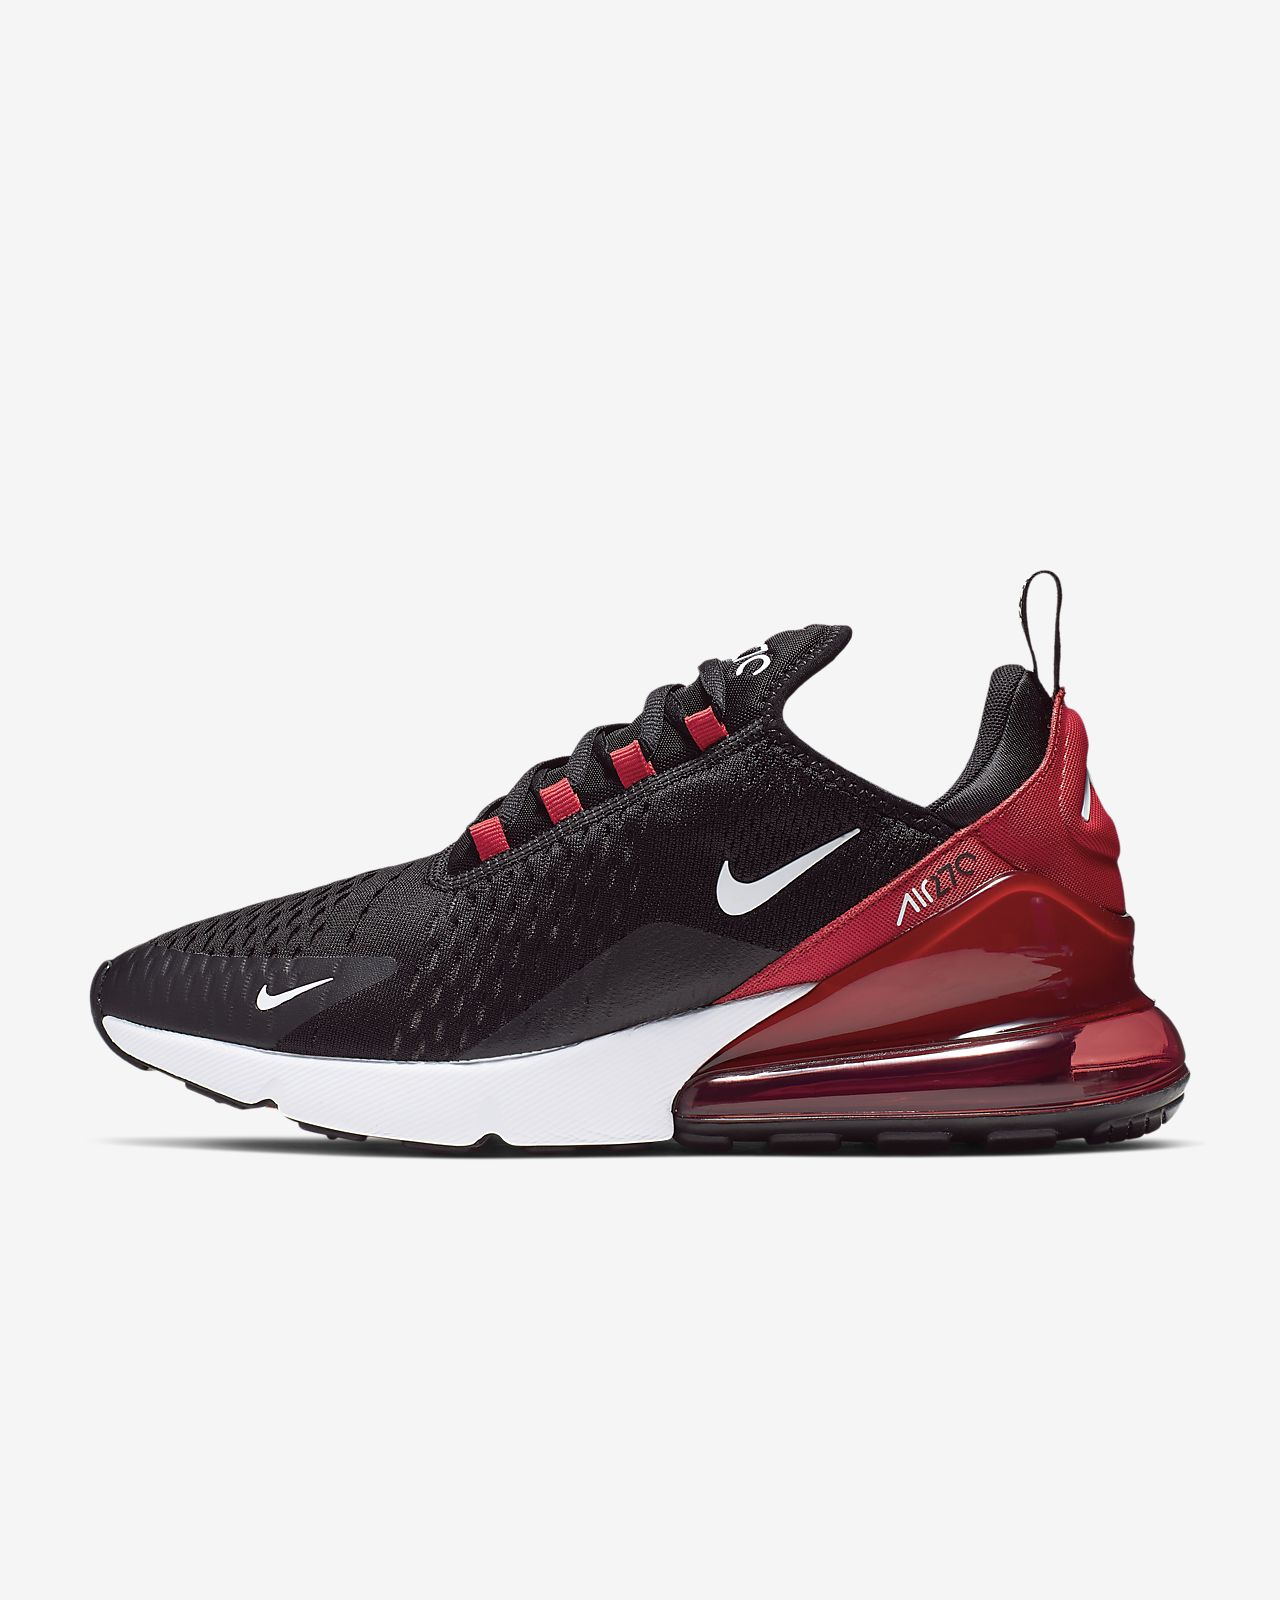 meet e6ff0 367b2 Men s Shoe. Nike Air Max 270